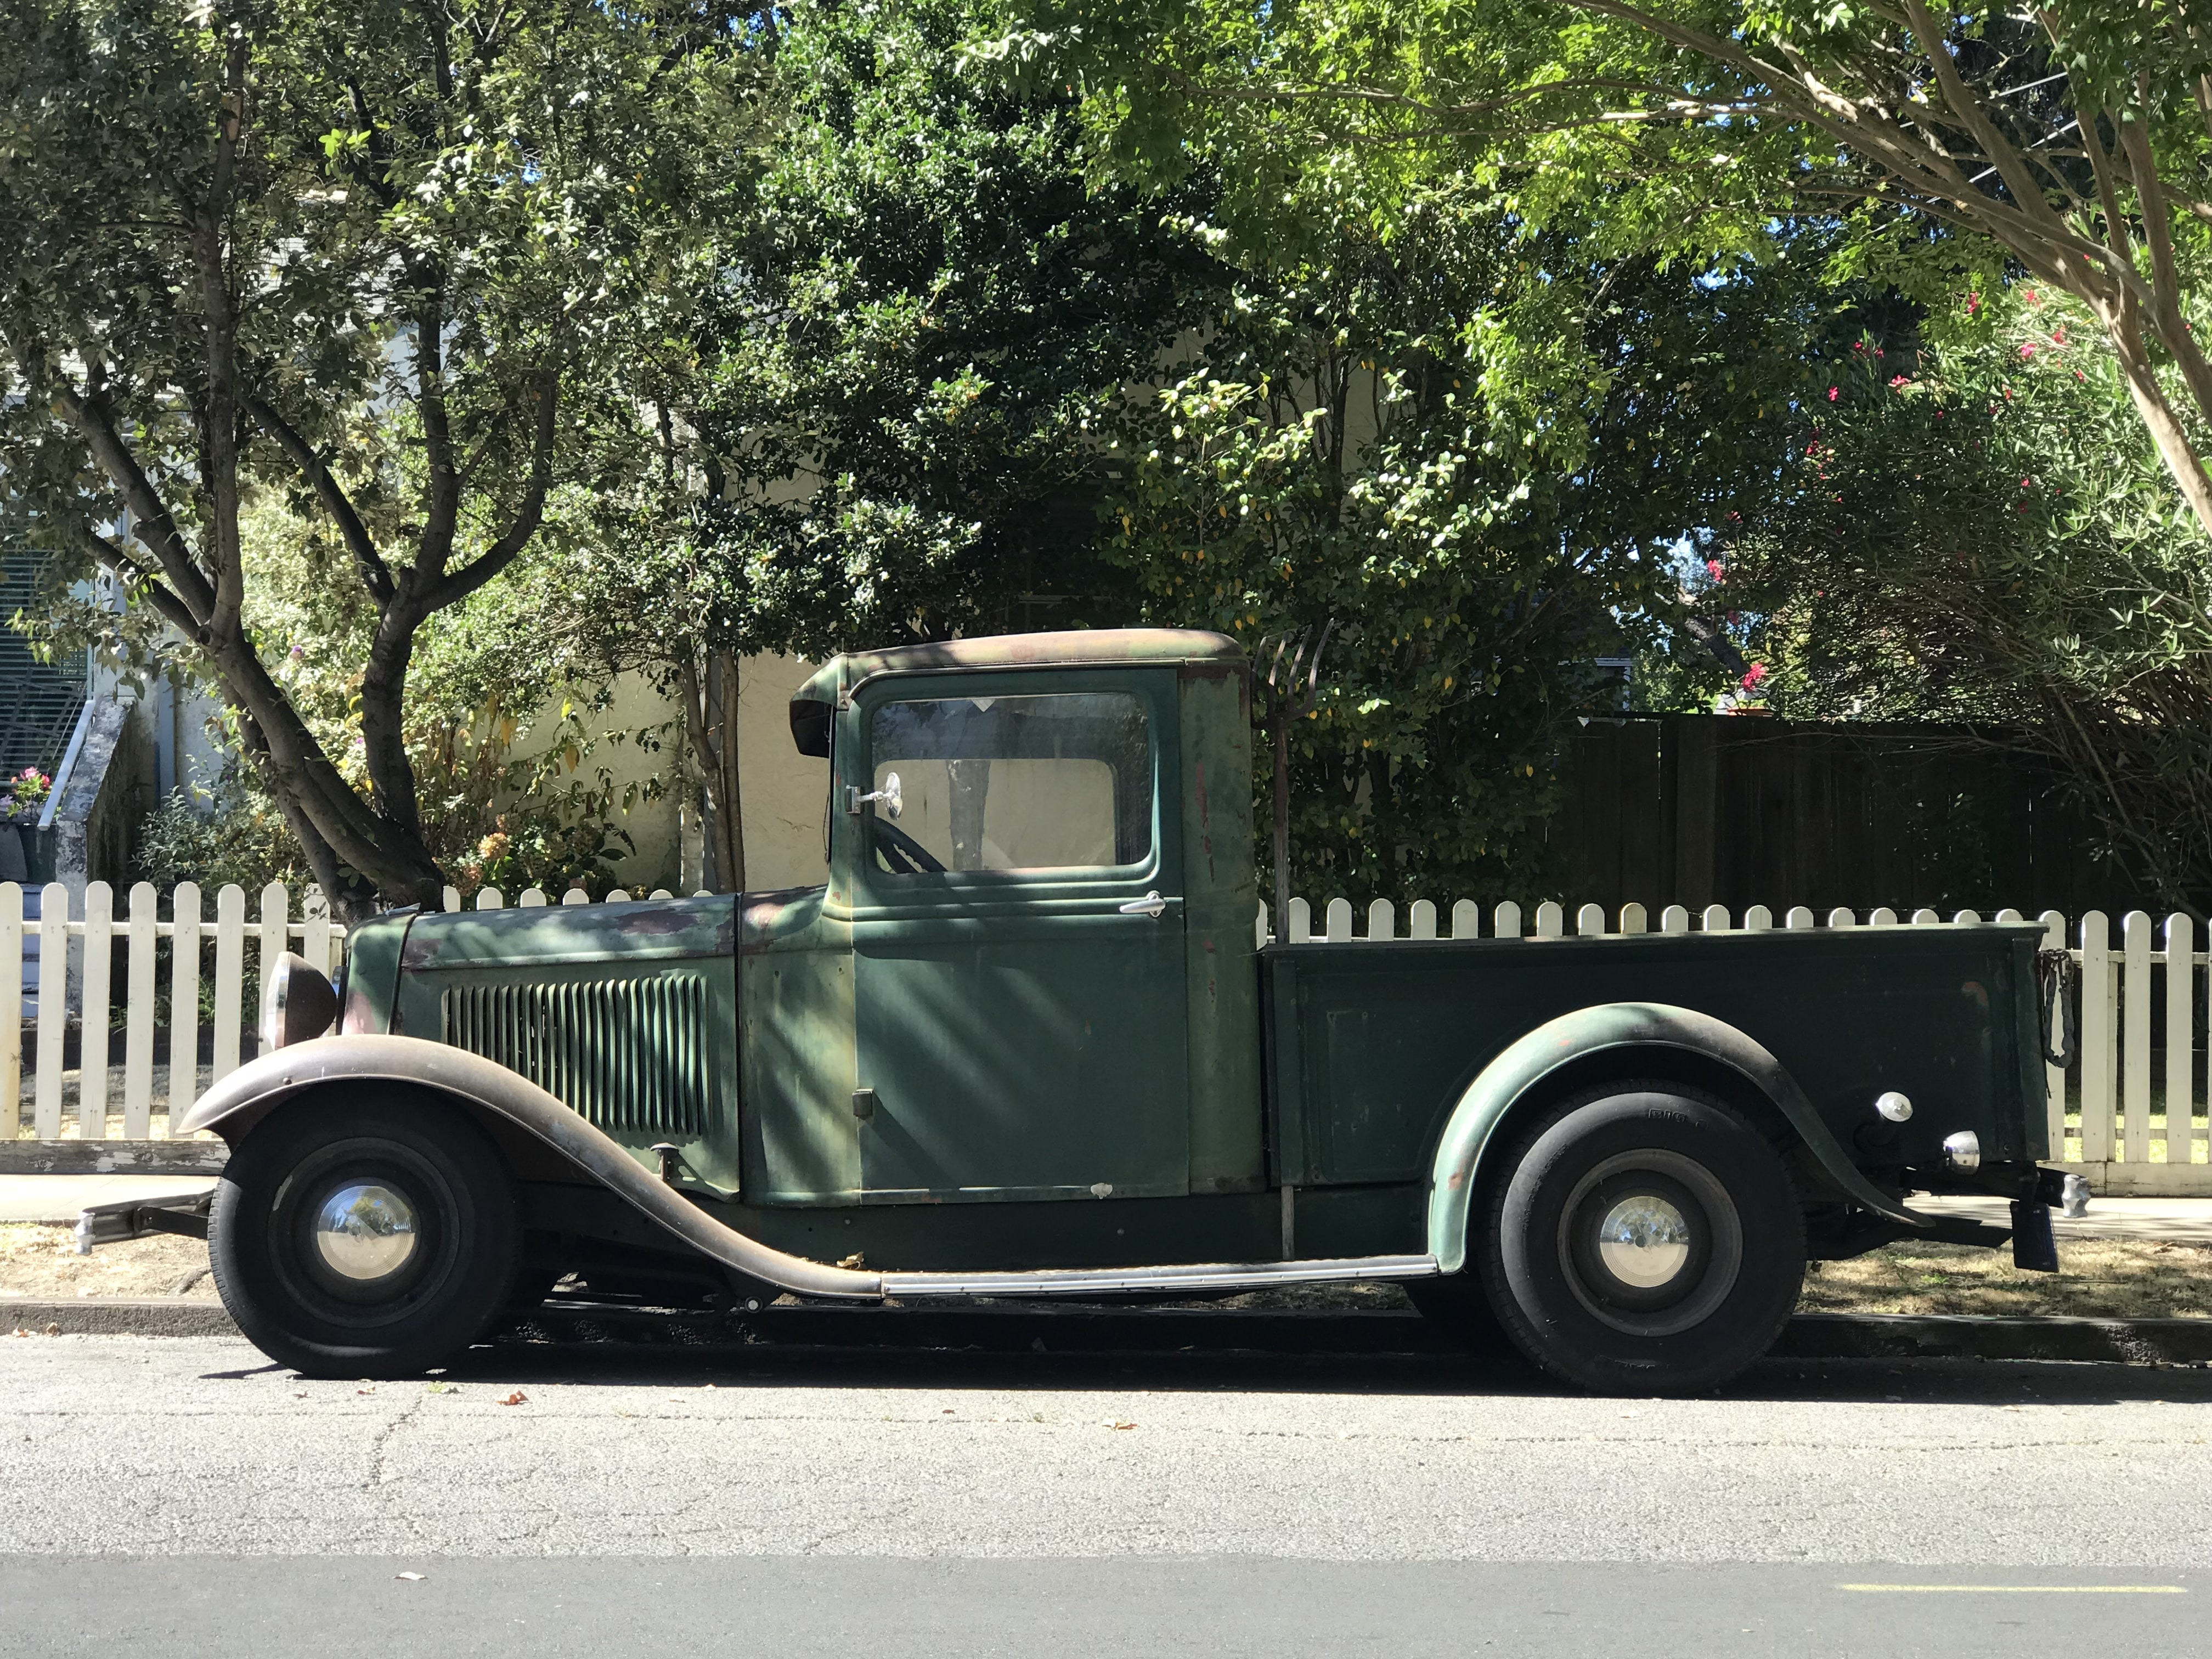 vintage green vehicle near white fence during daytime